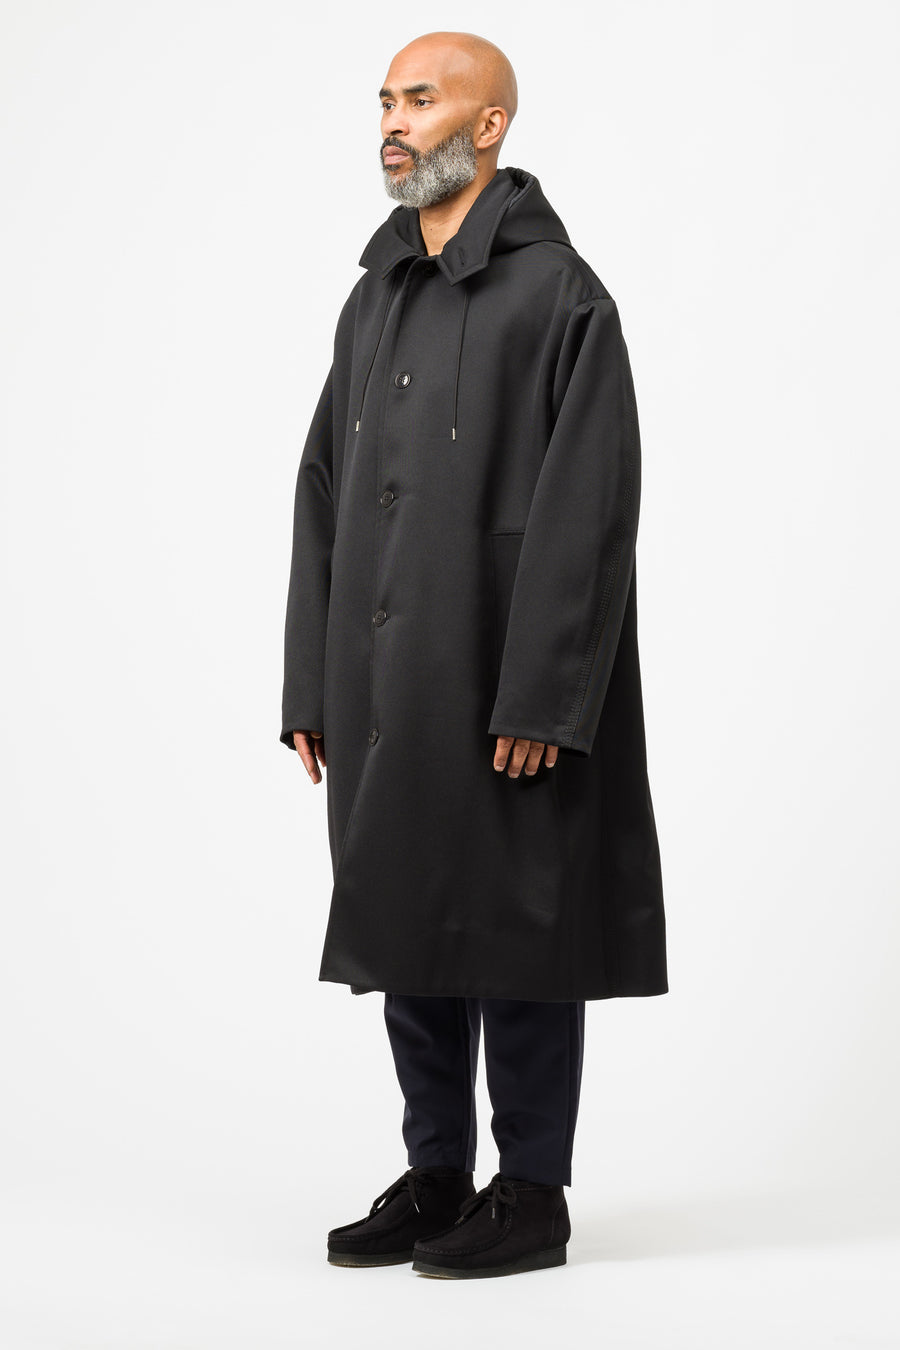 OAMC Tusk Coat in Black - Notre